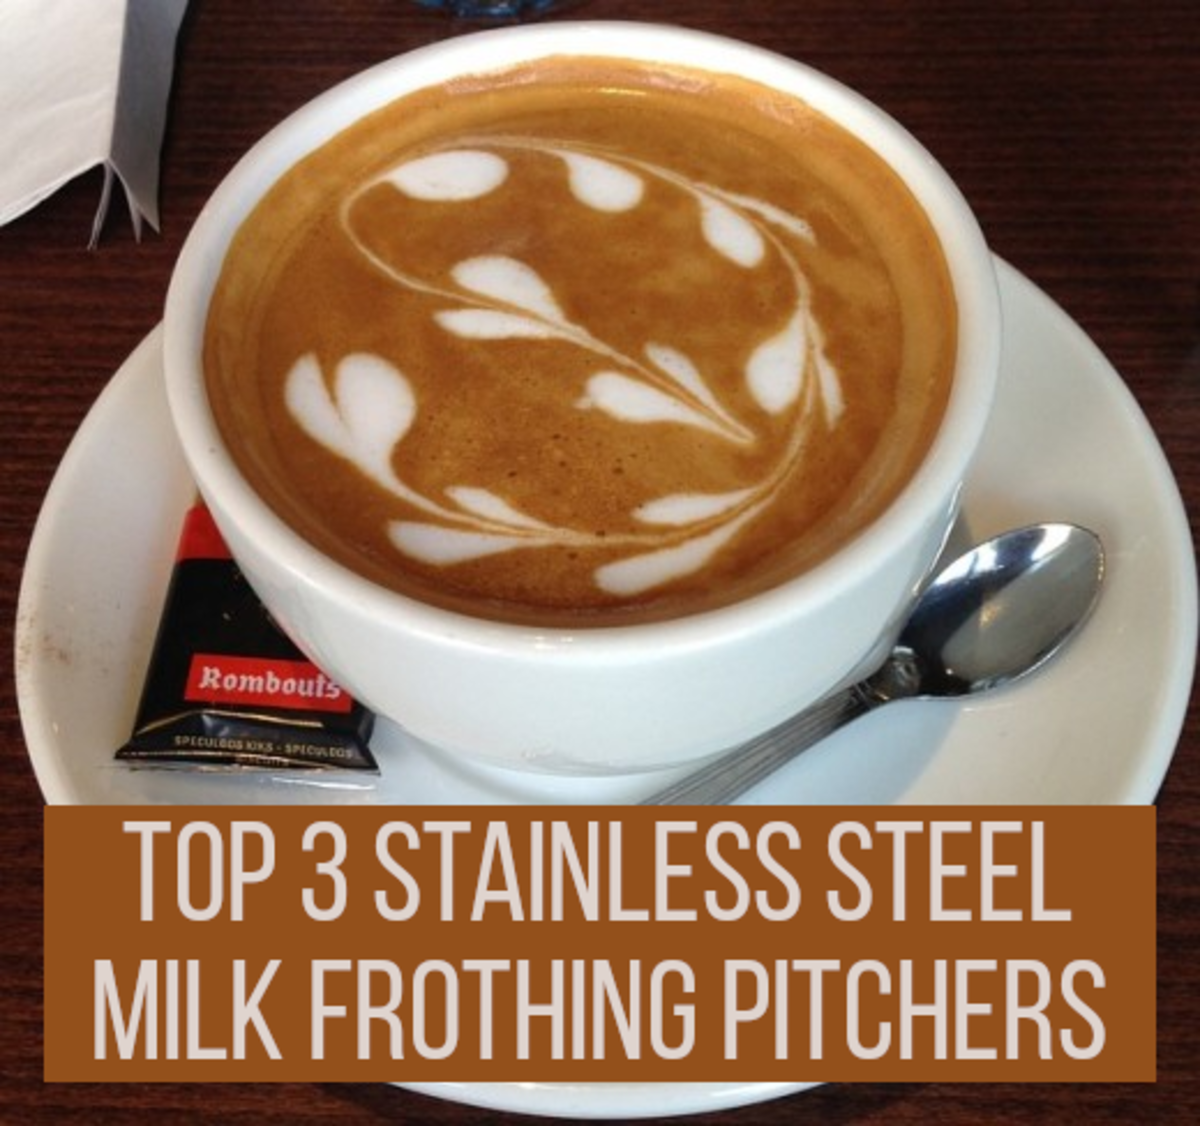 The Best Stainless Steel Milk Frothing Pitchers in 2020